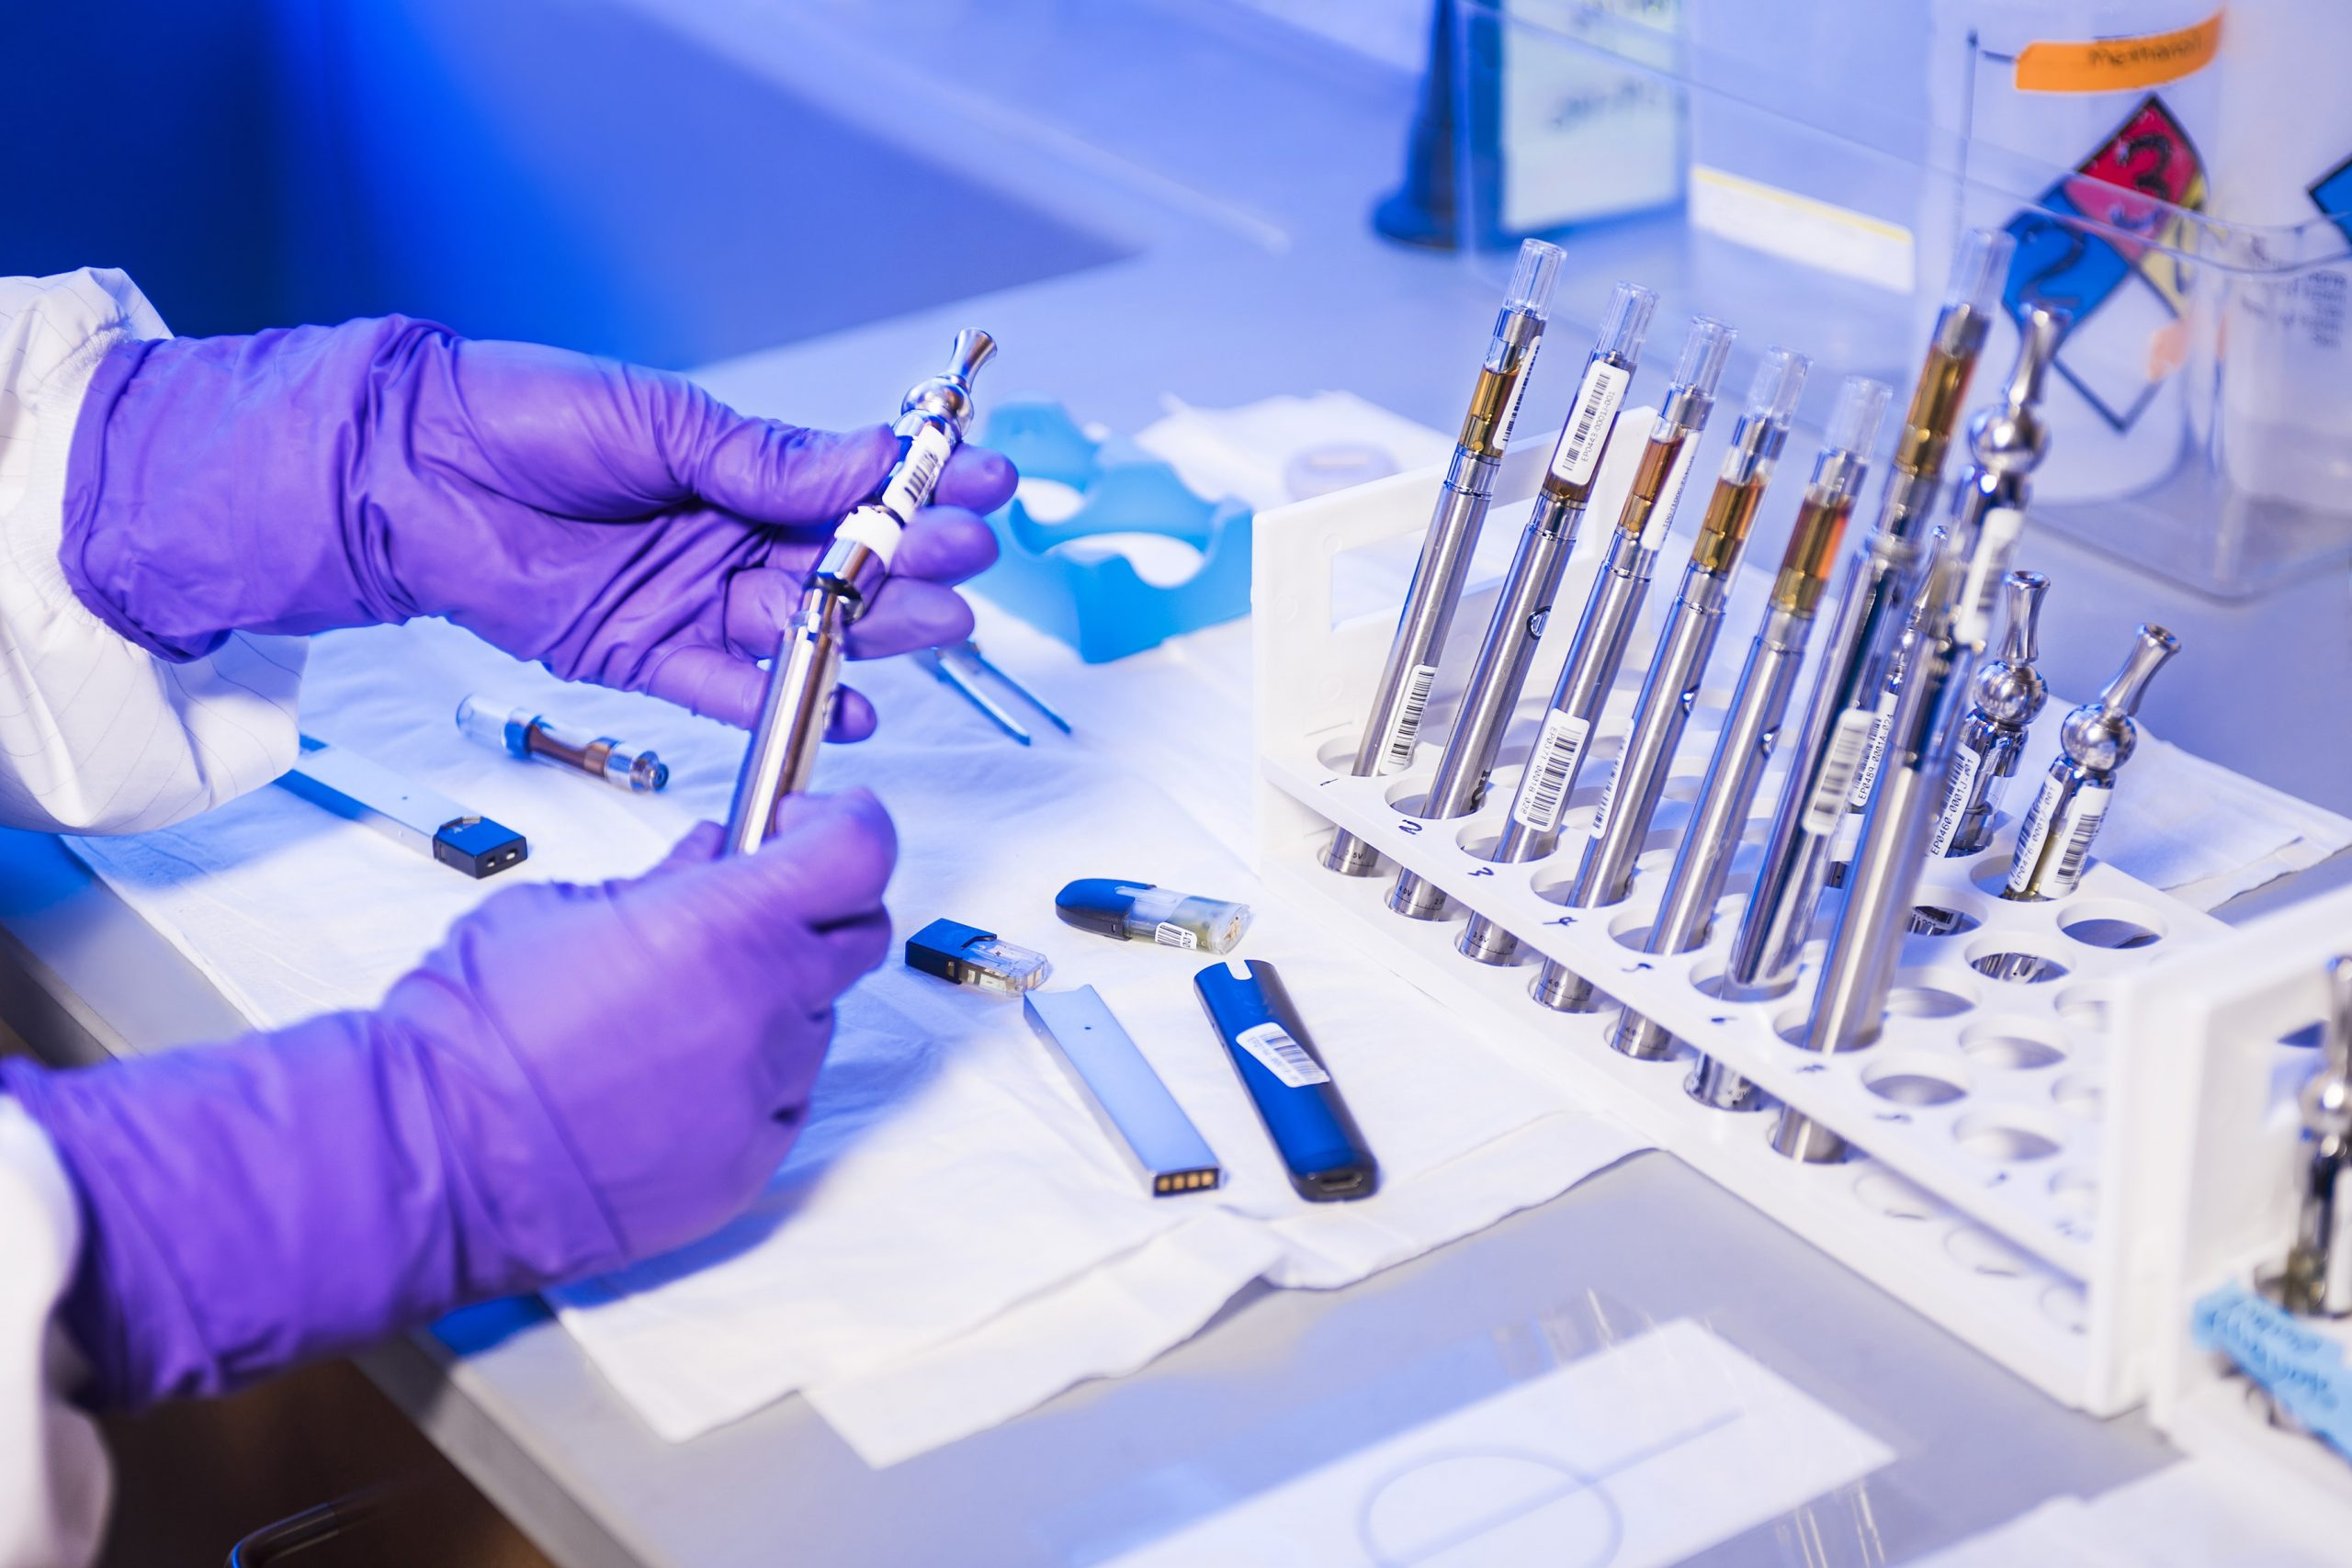 e-cigarettes being tested in a science laboratory